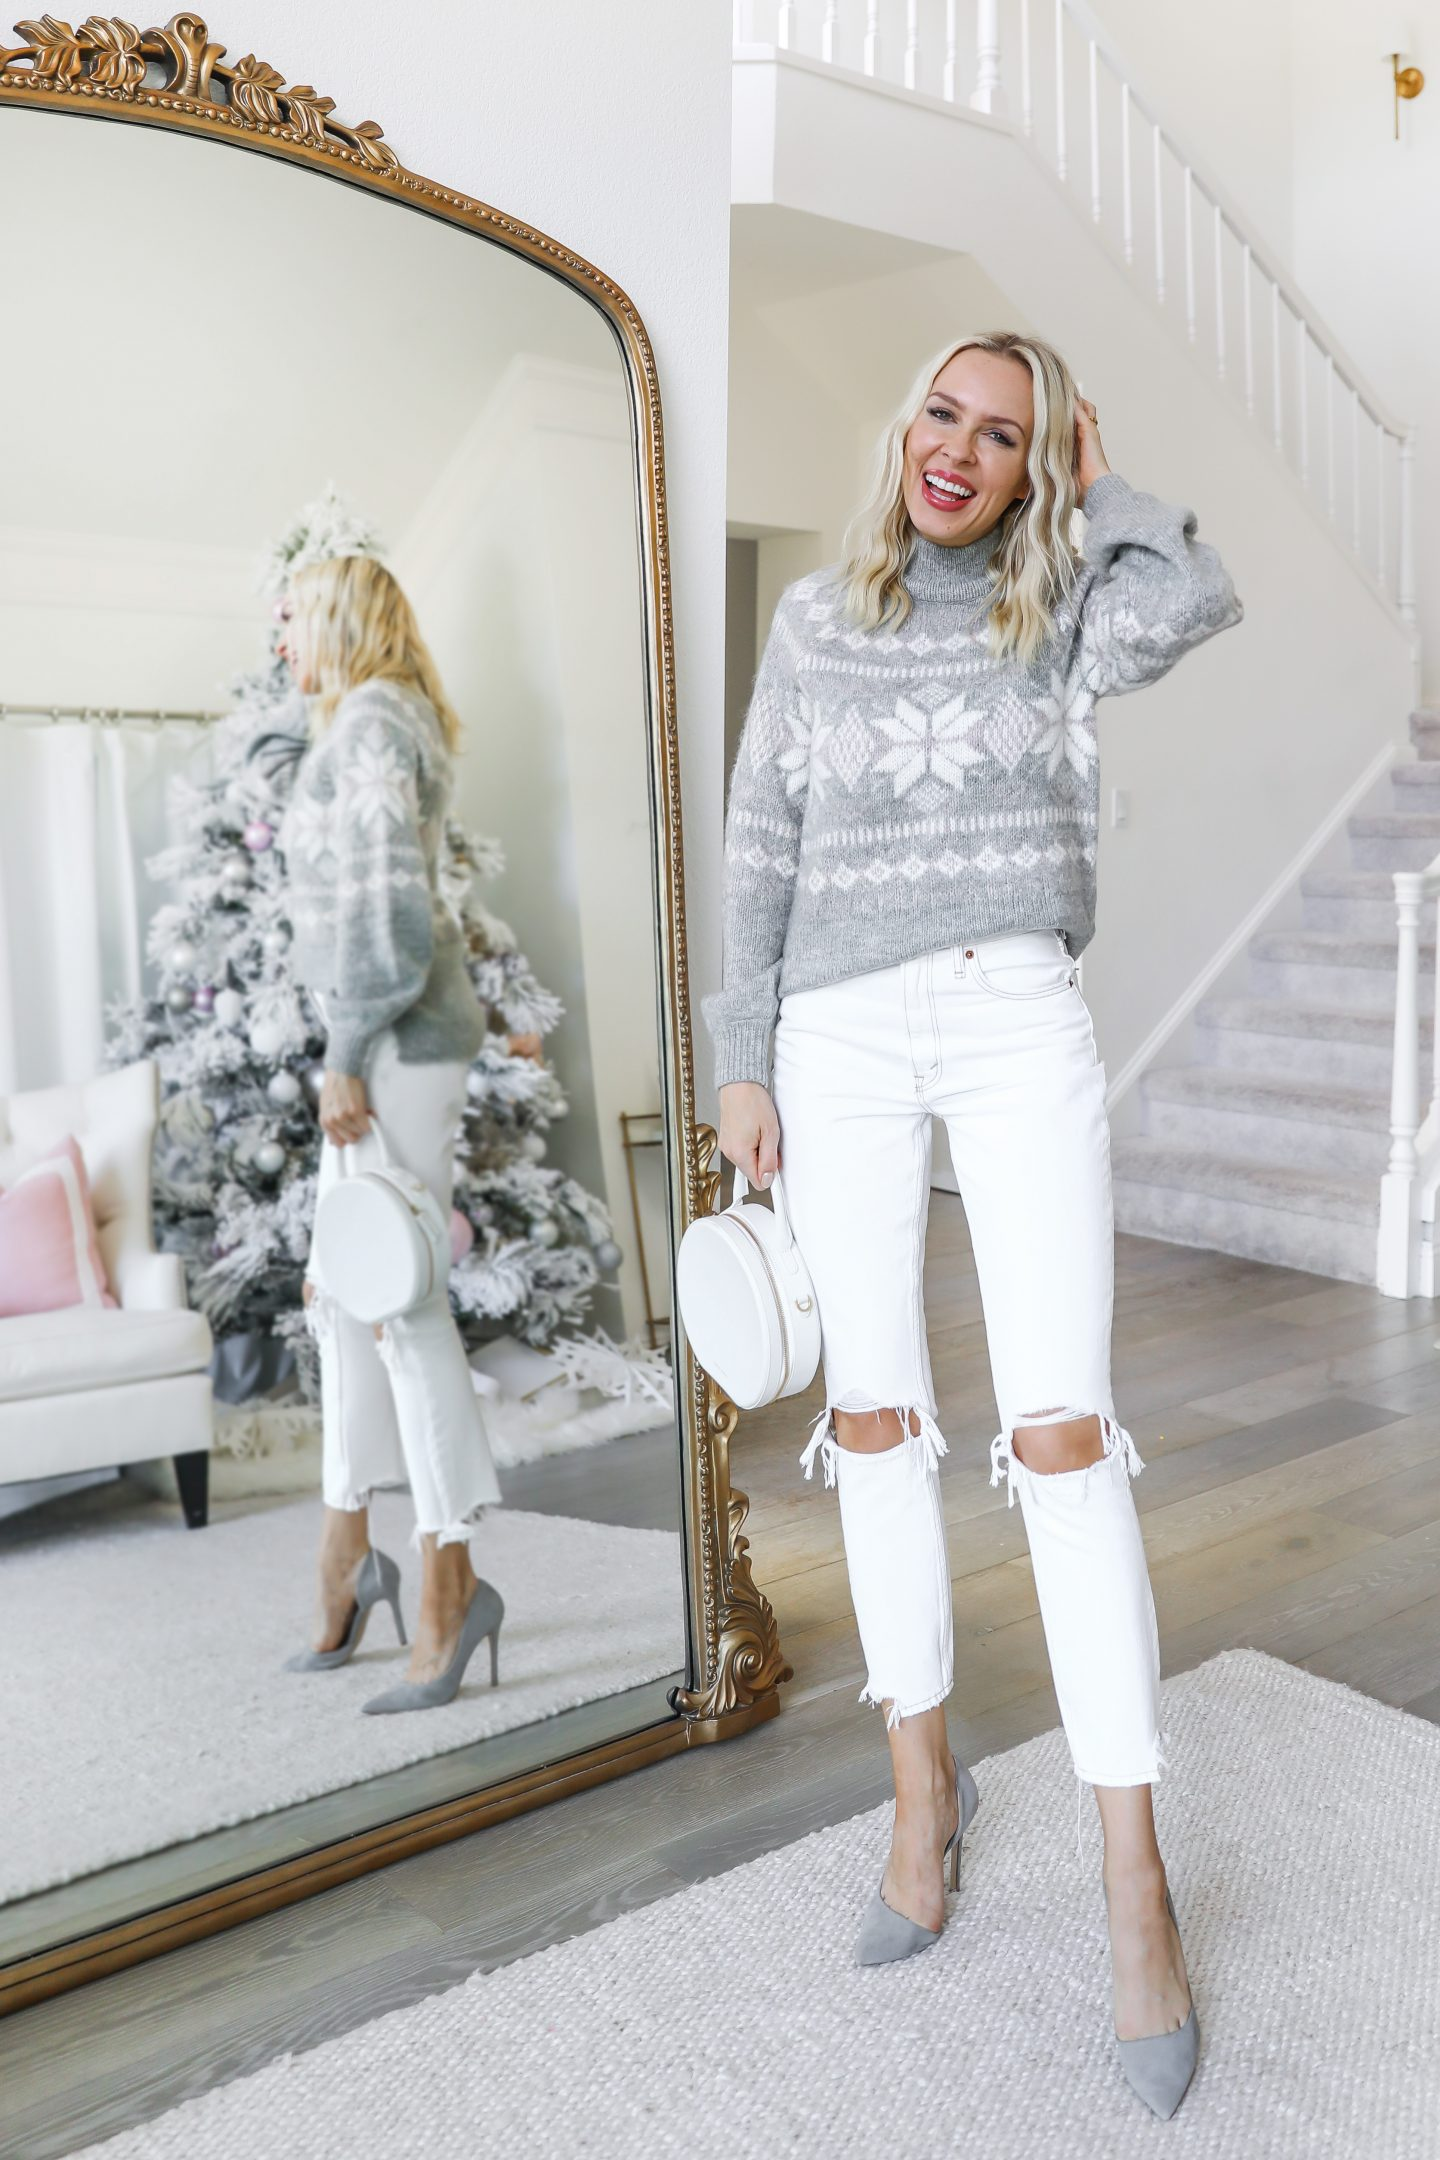 Abercrombie cozy knit pieces styled 5 ways for winter, featured by top San Francisco fashion blogger Lombard and Fifth.